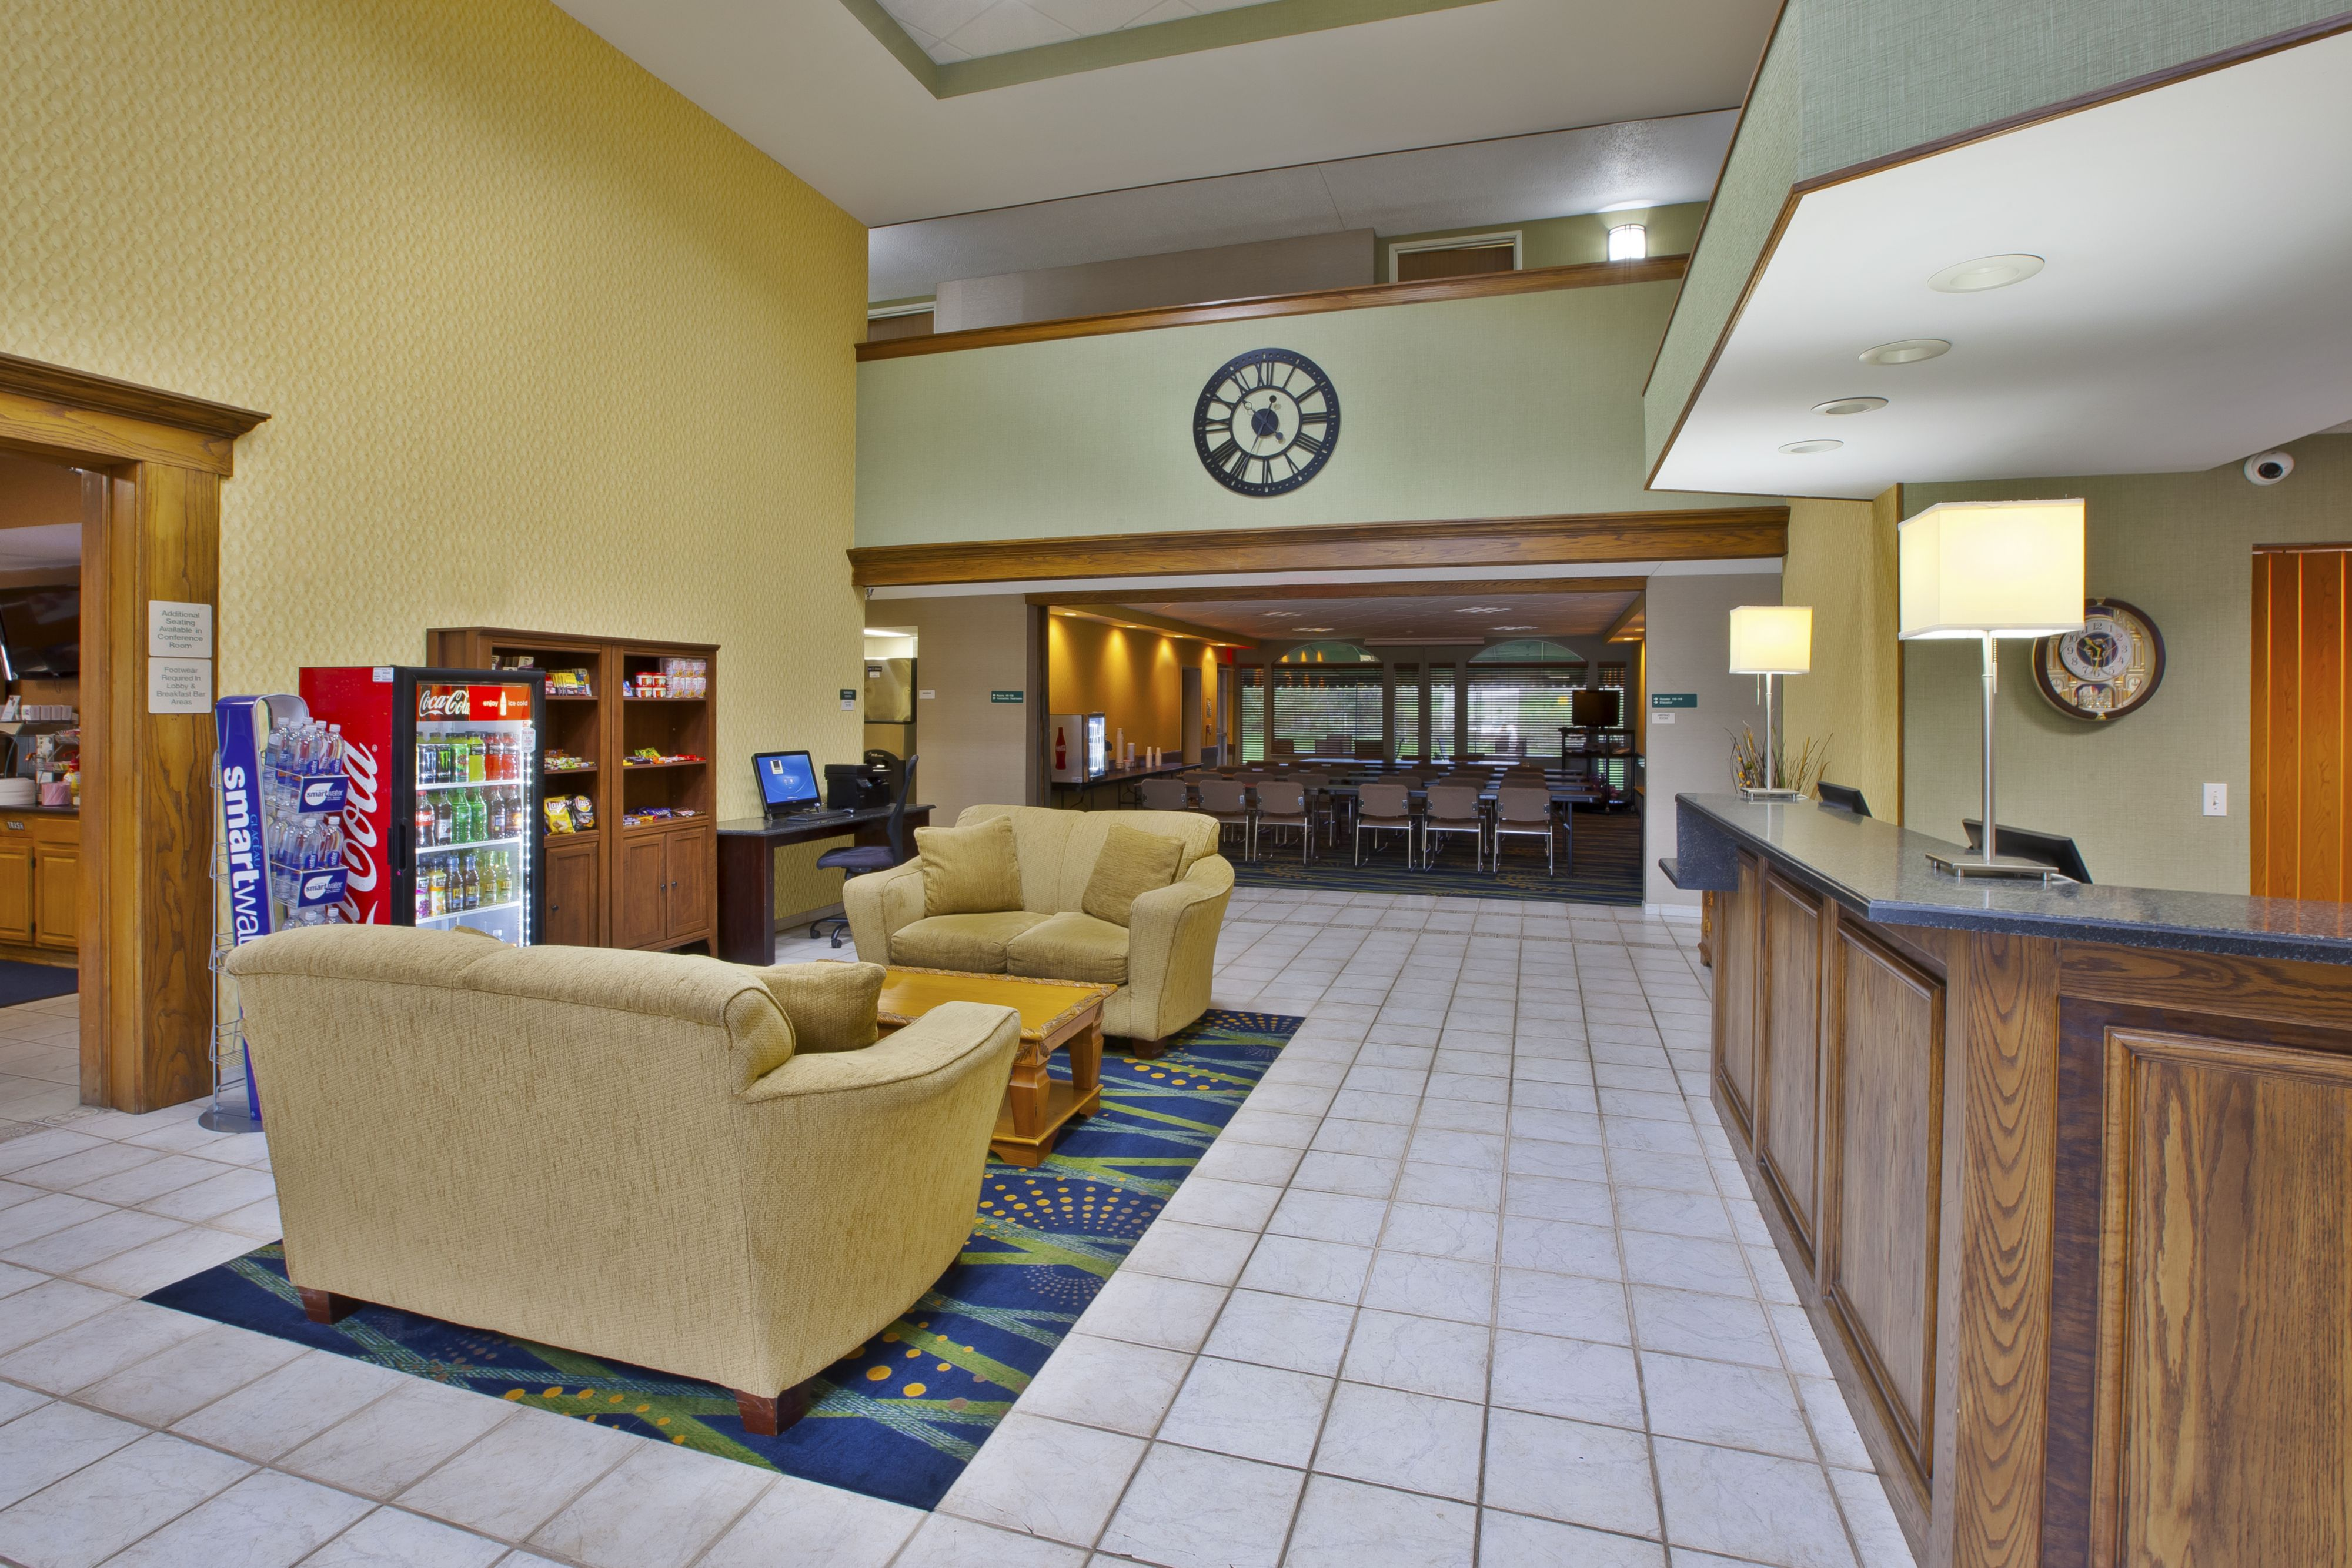 Holiday Inn Express Irwin (Pa Tpk Exit 67) image 3